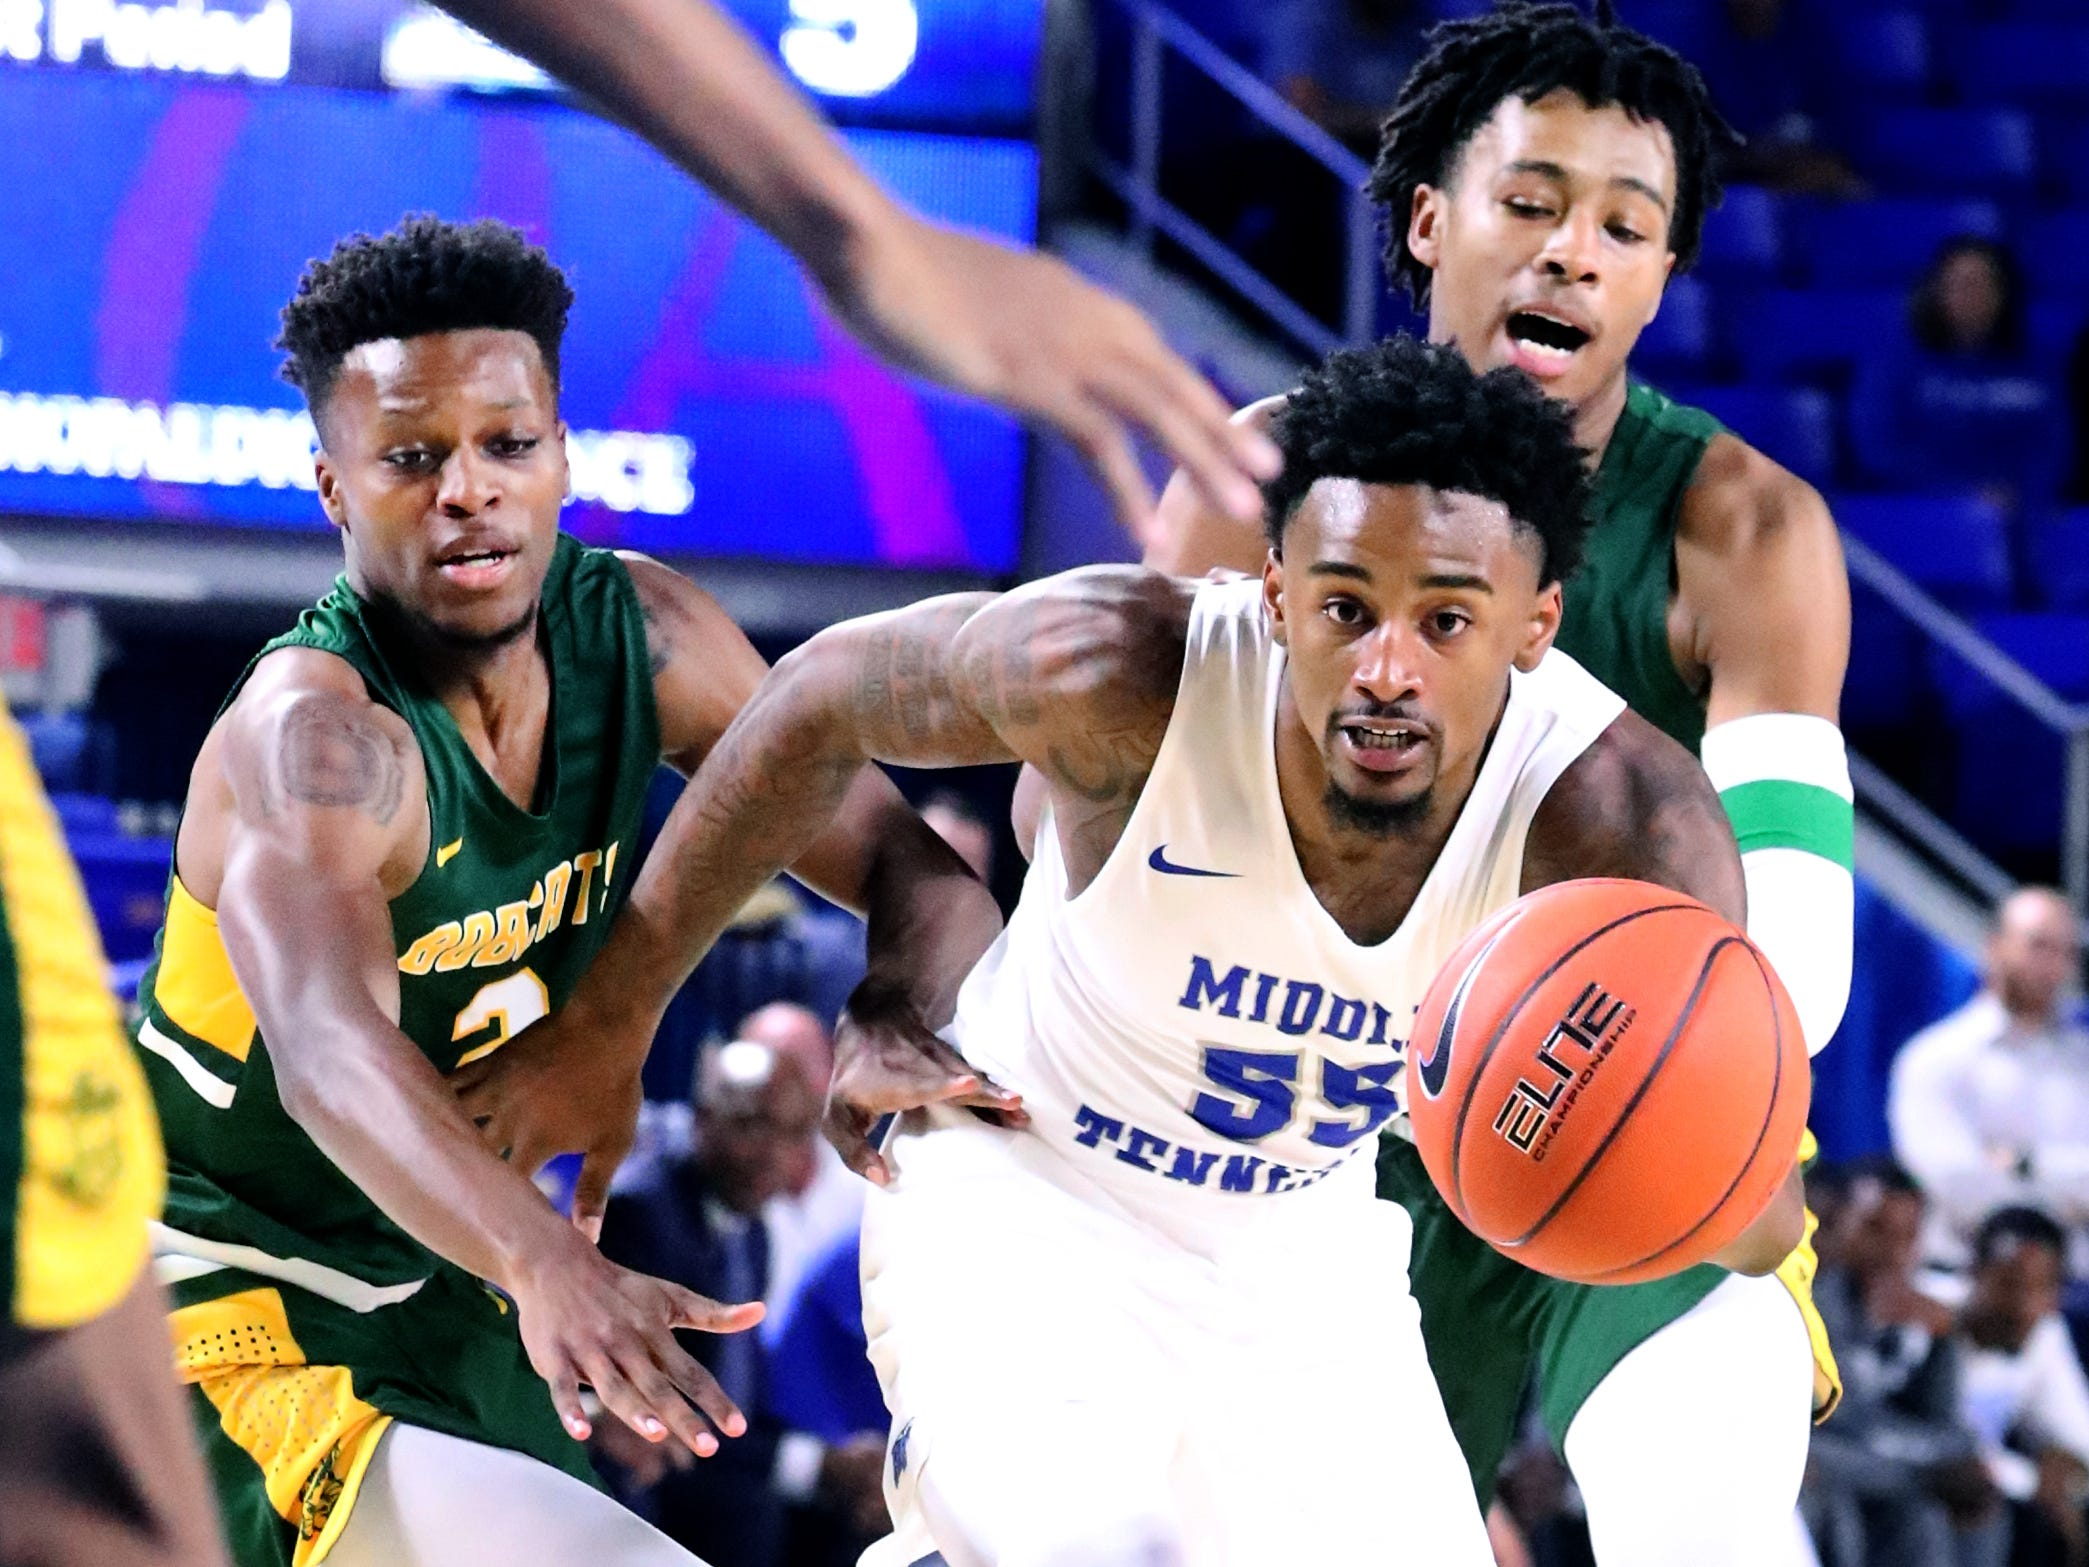 MTSU's Antonio Green (55) takes the ball down the court  as Lees-McRae's Quay Kimble (2) guards him on Tuesday, Nov. 6, 2018.